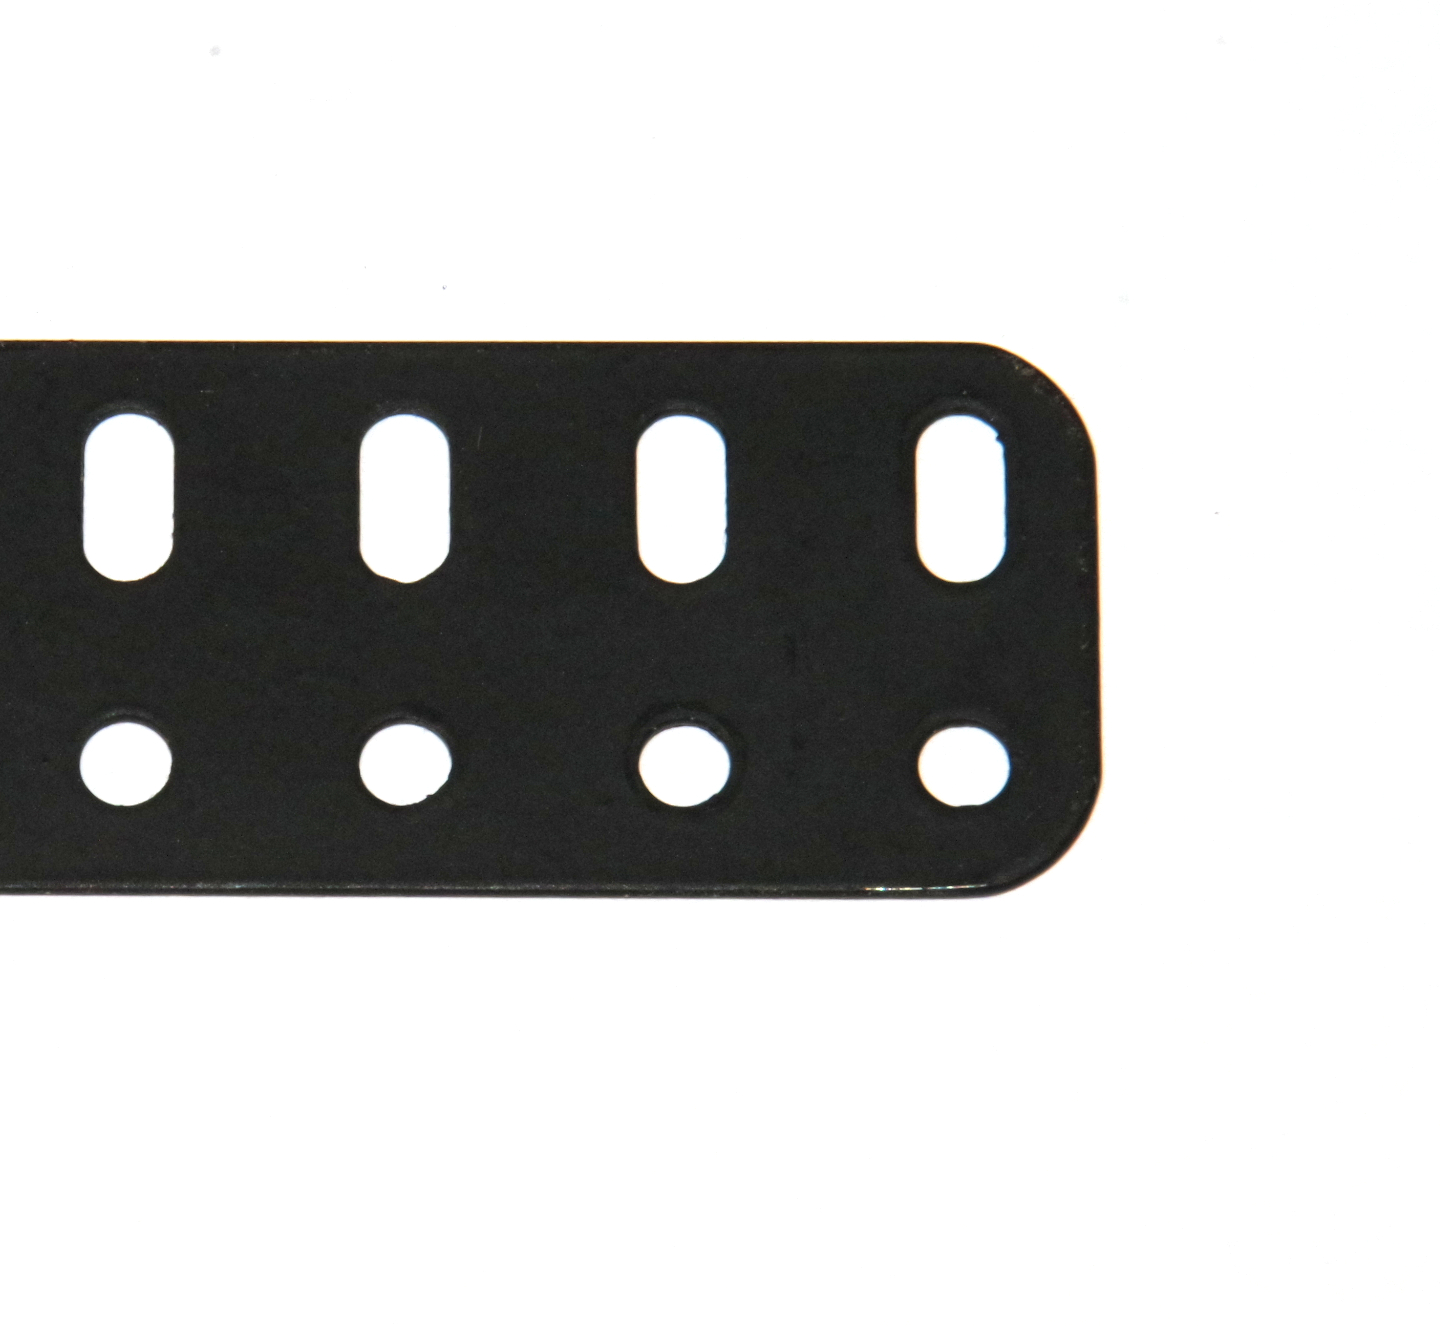 103d Flat Girder 7 Hole Black Original